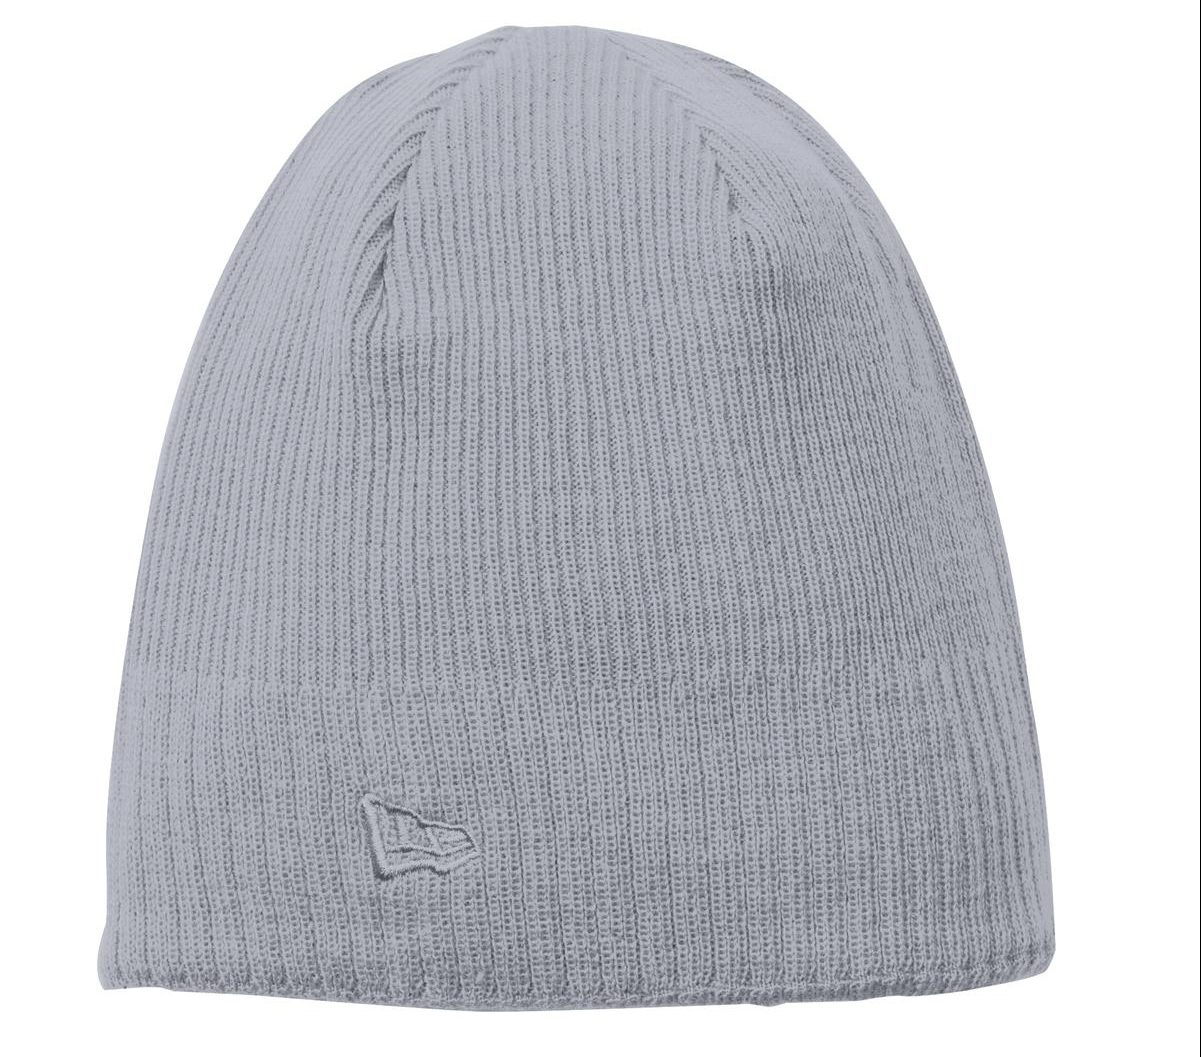 NE900 New Era Knit Beanie